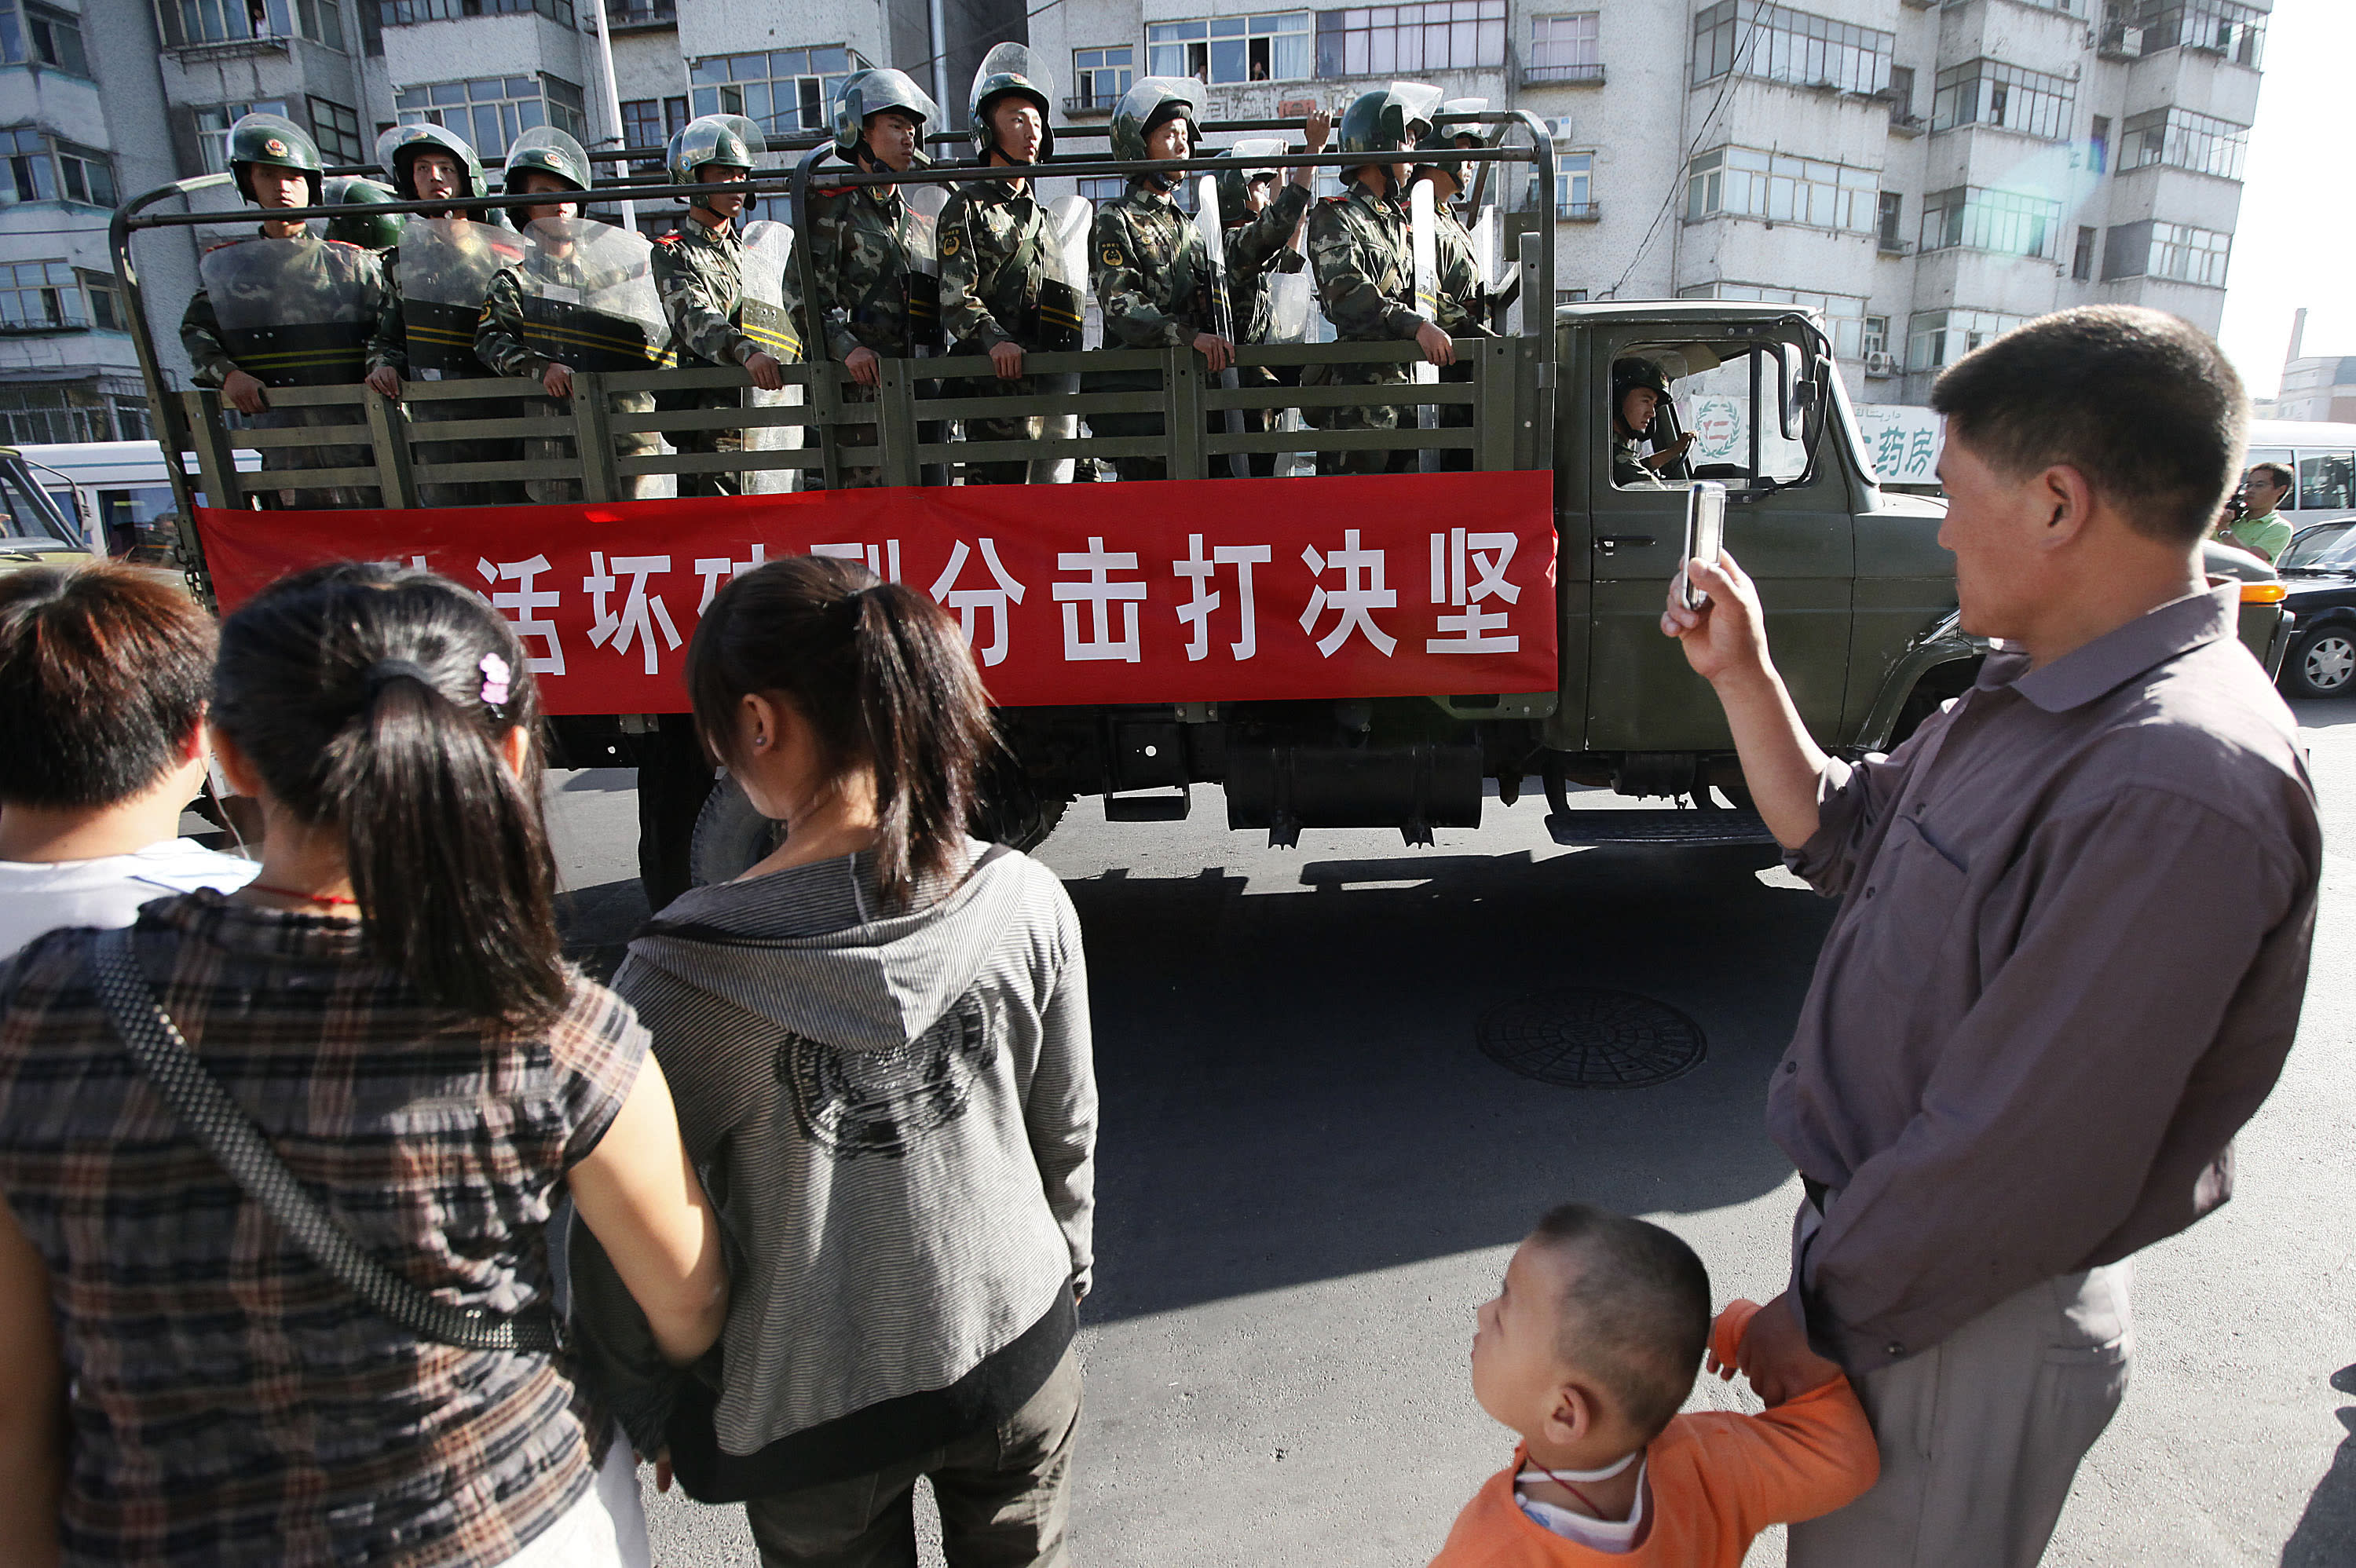 """FILE - In this file photo taken Thursday, July 9, 2009, bystanders look at a truckload of paramilitary police with a banner which reads """"Determined crackdown on separatist activities"""" patrol in the aftermath of riots in Urumqi in western China's Xinjiang province, Analysts say the Urumqi riots in 2009 set in motion the harsh security measures now in place across Xinjiang, where about 1 million Uighurs, Kazakhs and other Muslims are estimated to be held in heavily-guarded internment camps _ also called """"re-education"""" camps _ which the Chinese government describes as vocational training centers. (AP Photo/Eugene Hoshiko, File)"""